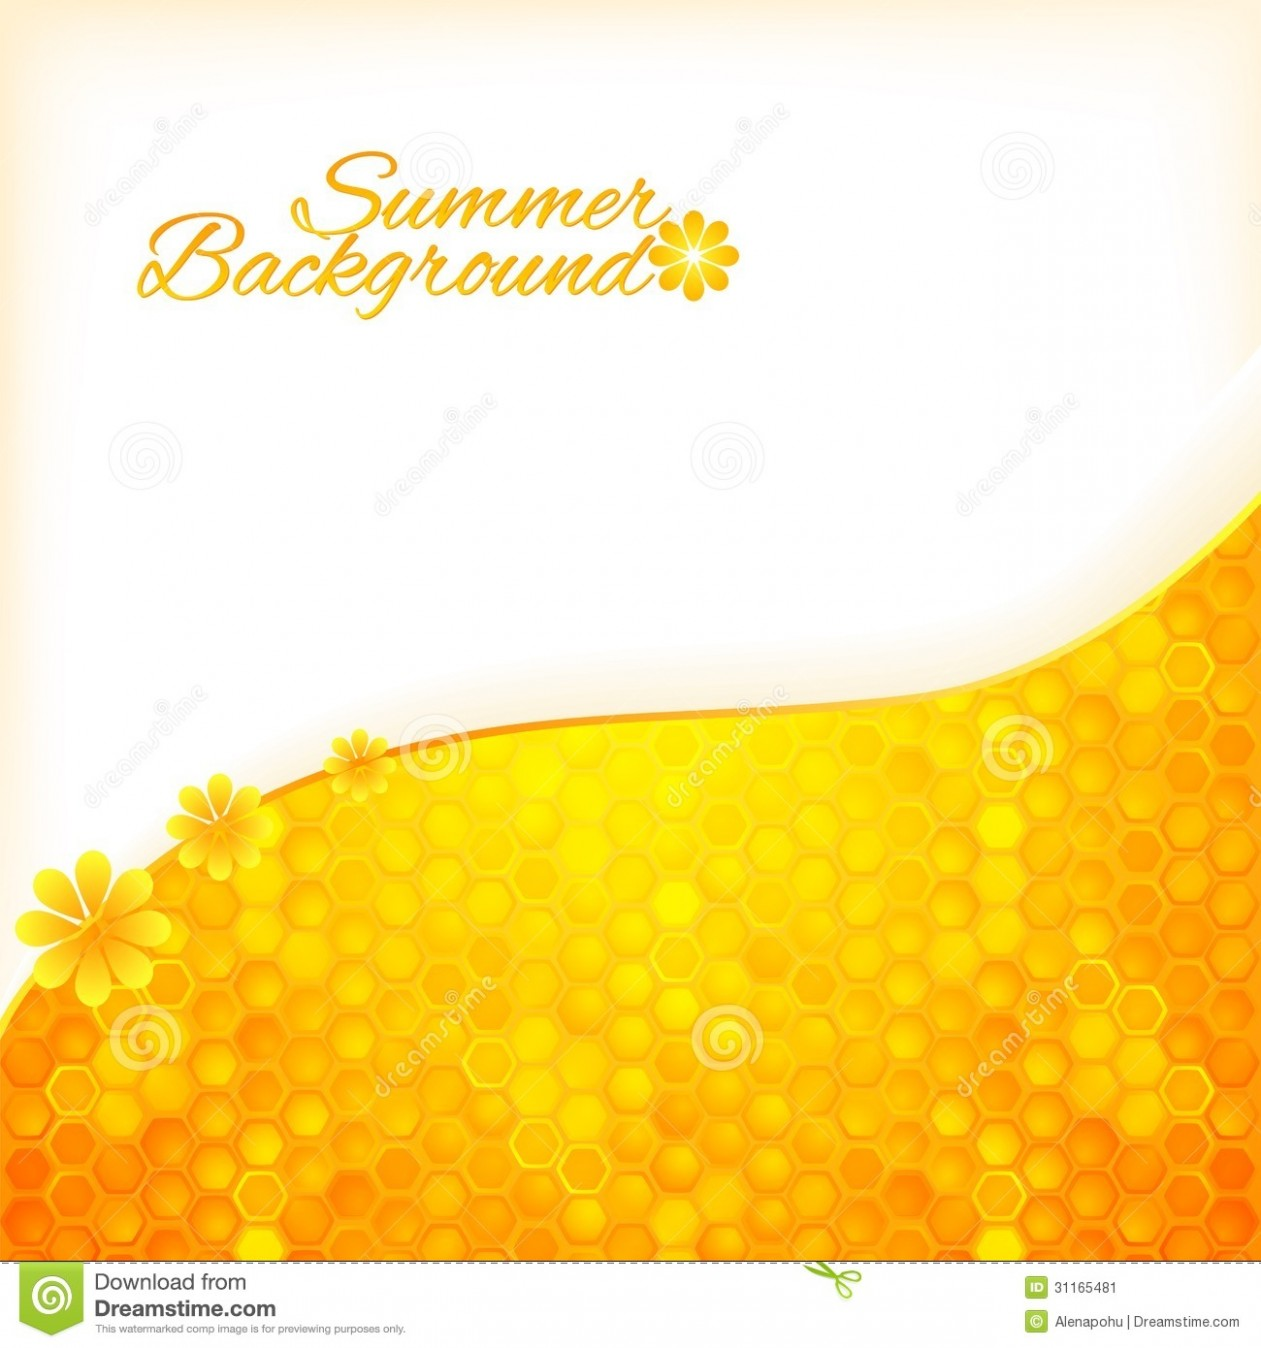 card template vector image id card  Abstract Summer Background With Honey Stock Image - Image ..